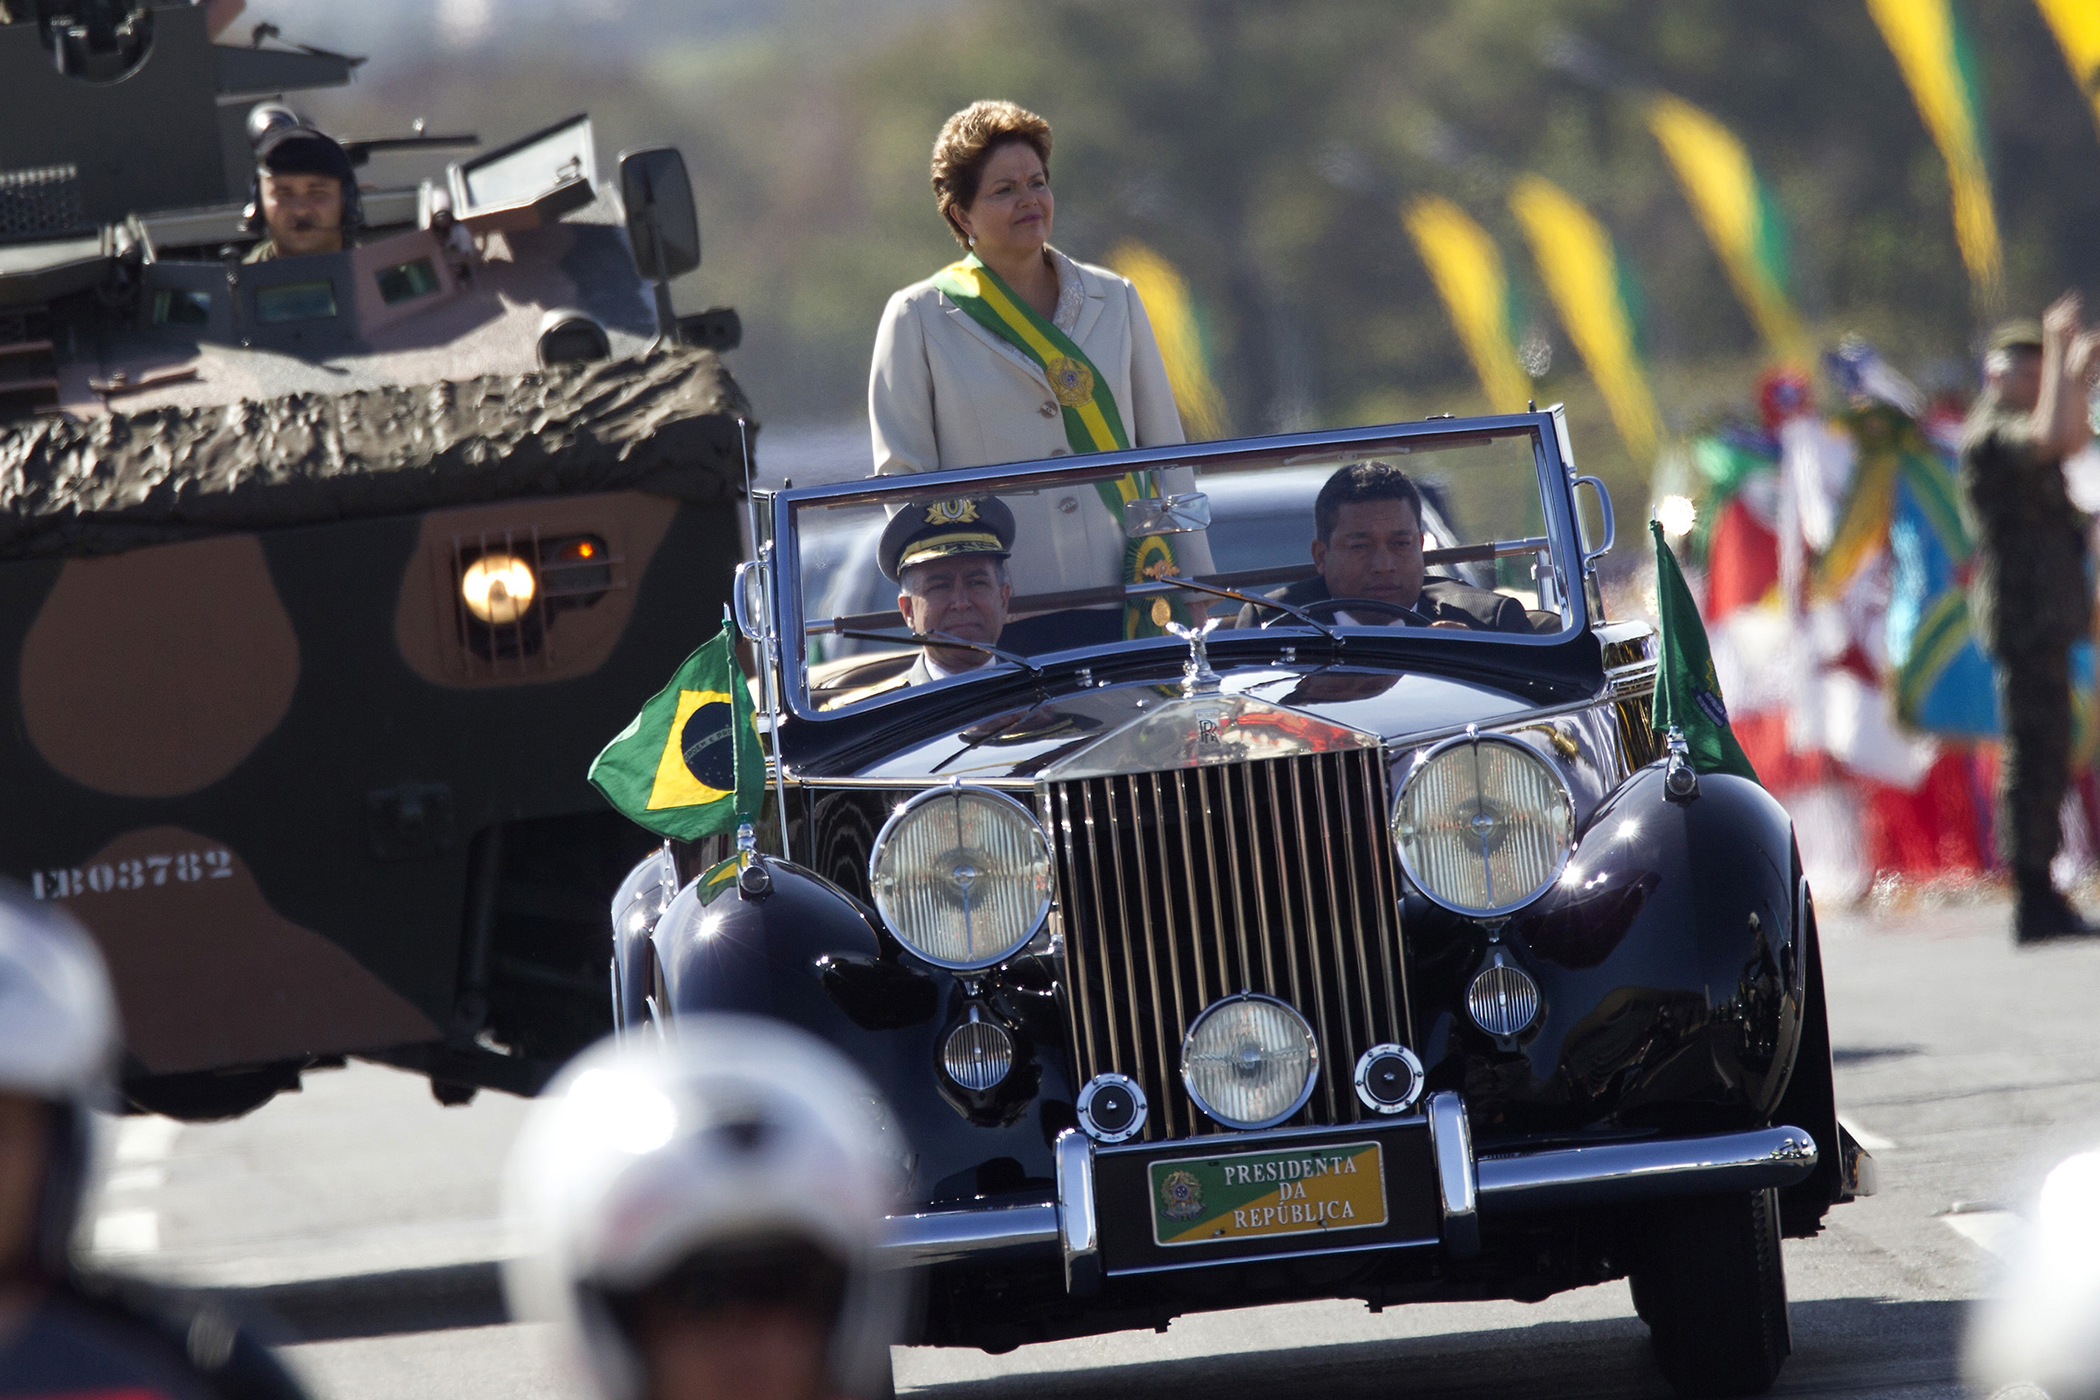 Brazil's President Dilma Rousseff stands in a vehicle during a civic-military parade commemorating of Brazilian independence Day September 7, 2012.